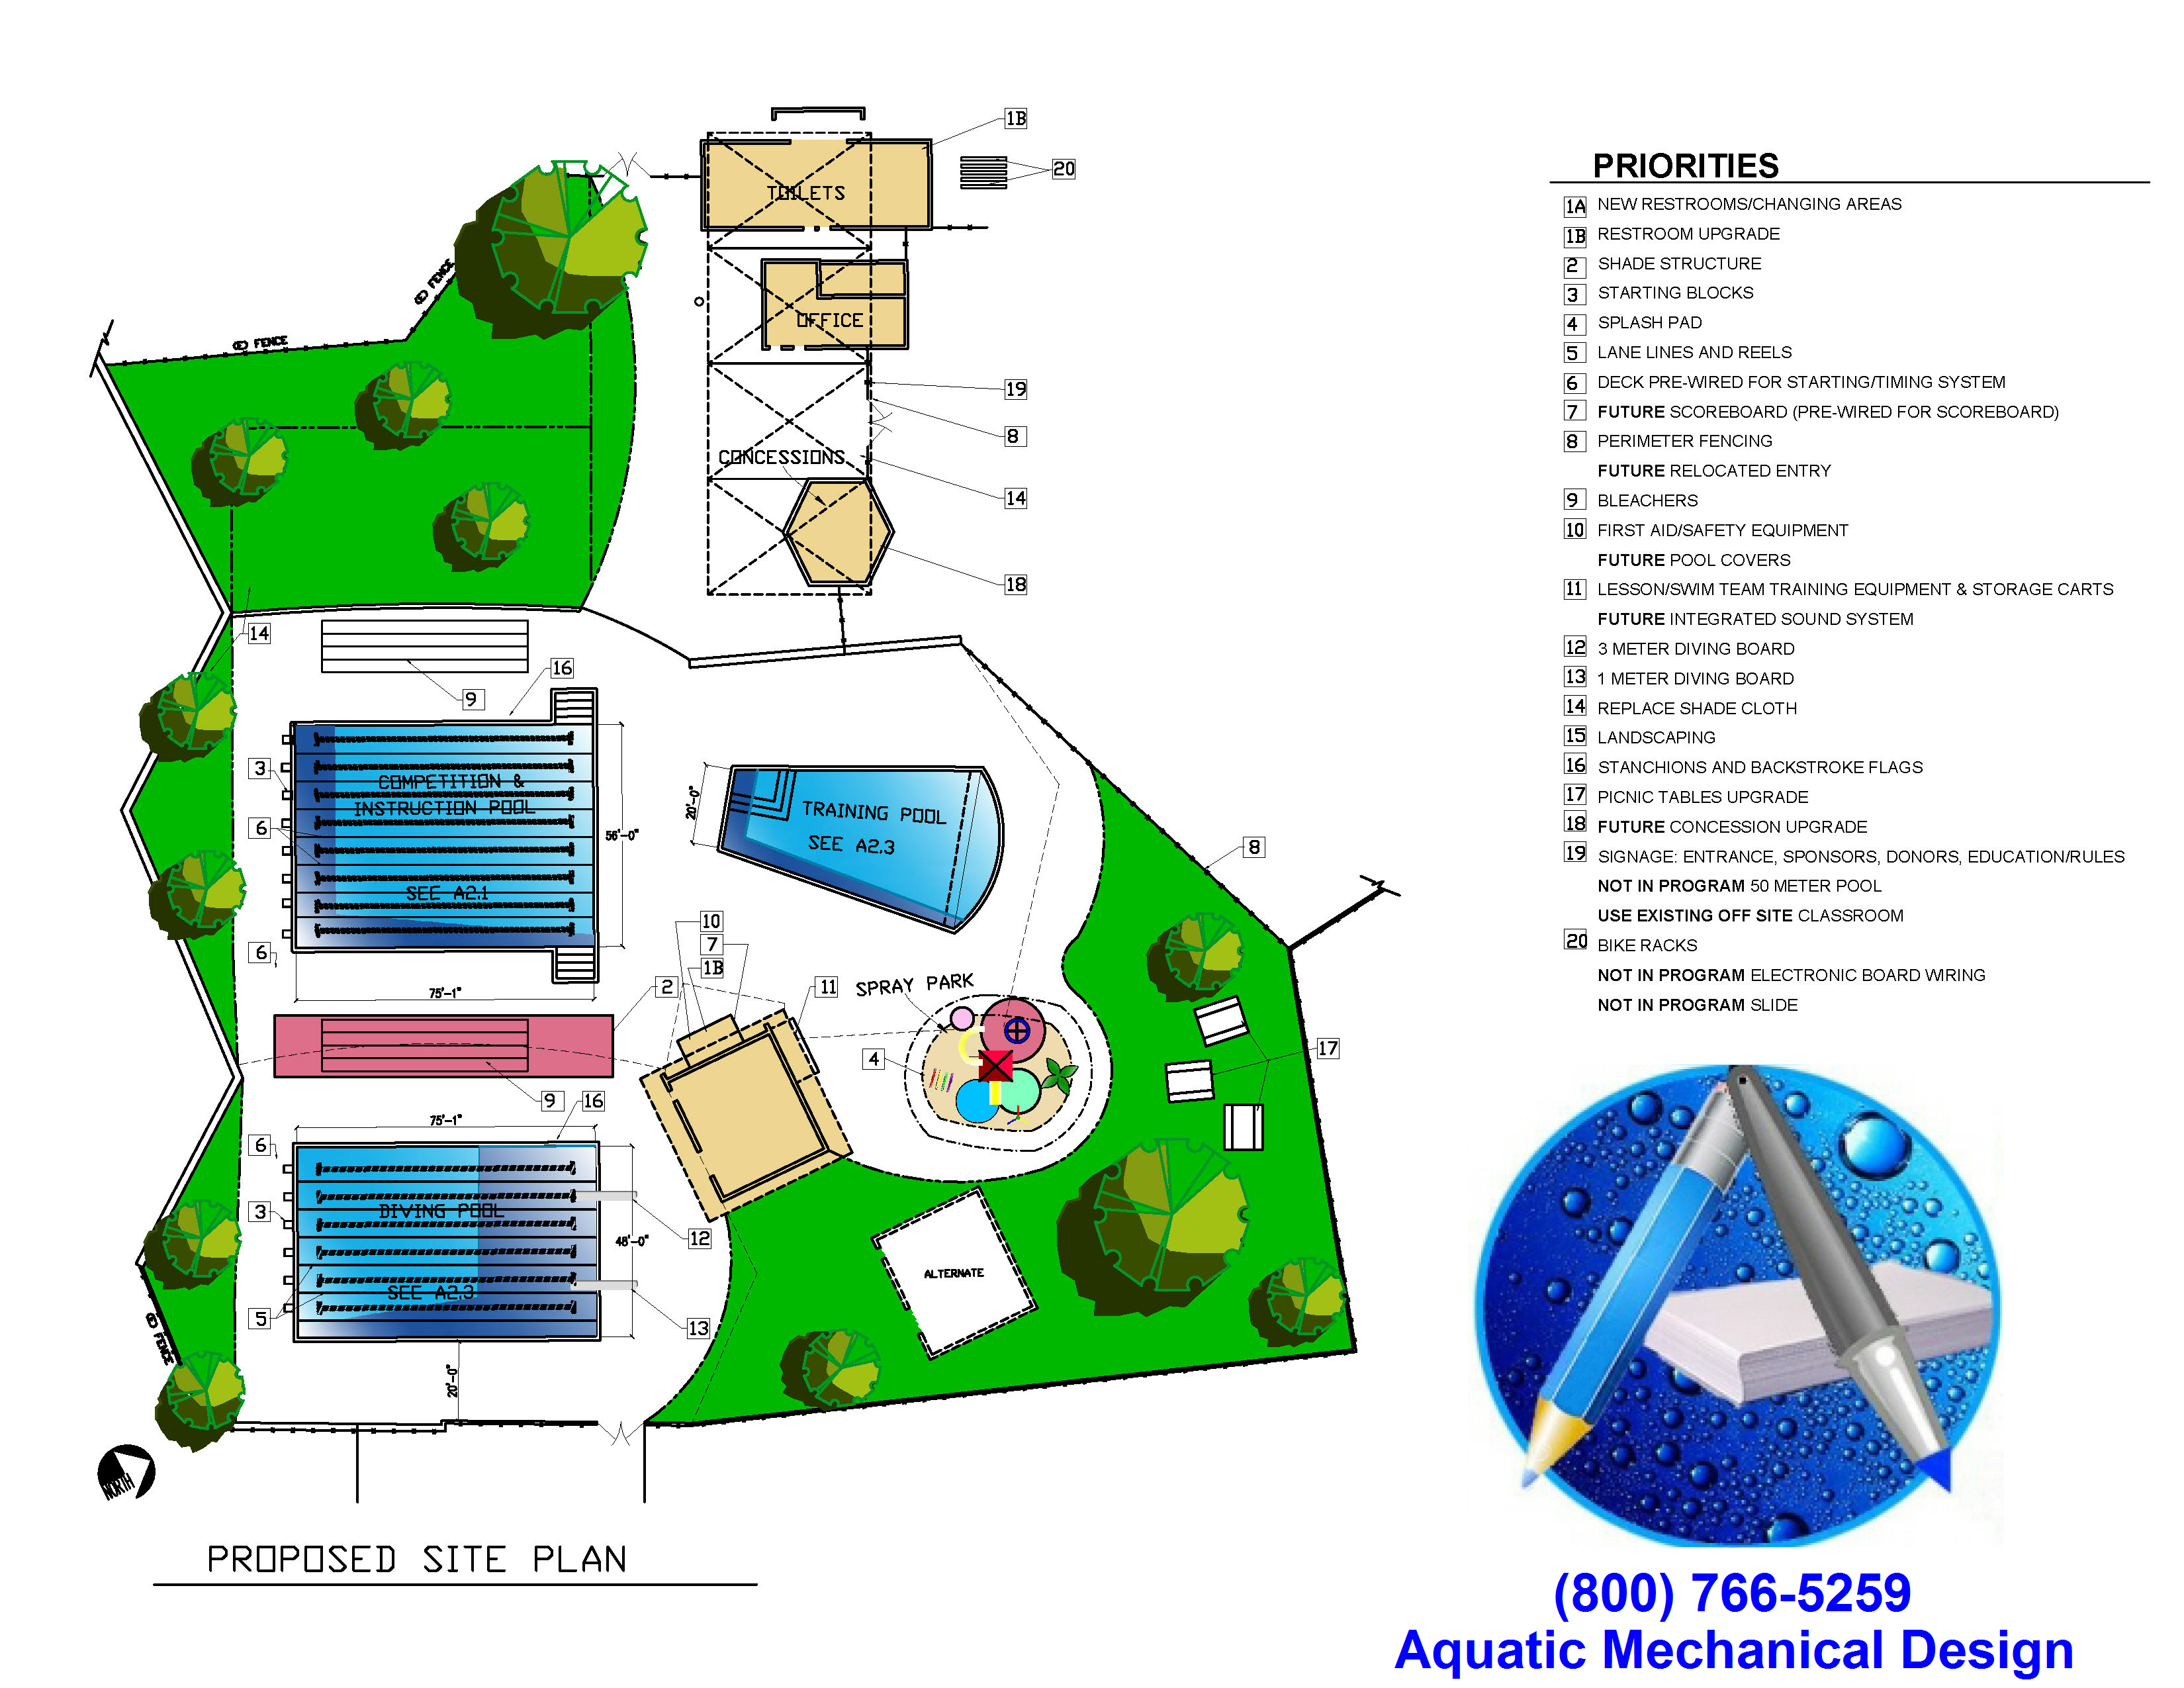 Commercial swimming pool design work scope outline for Pool design and engineering